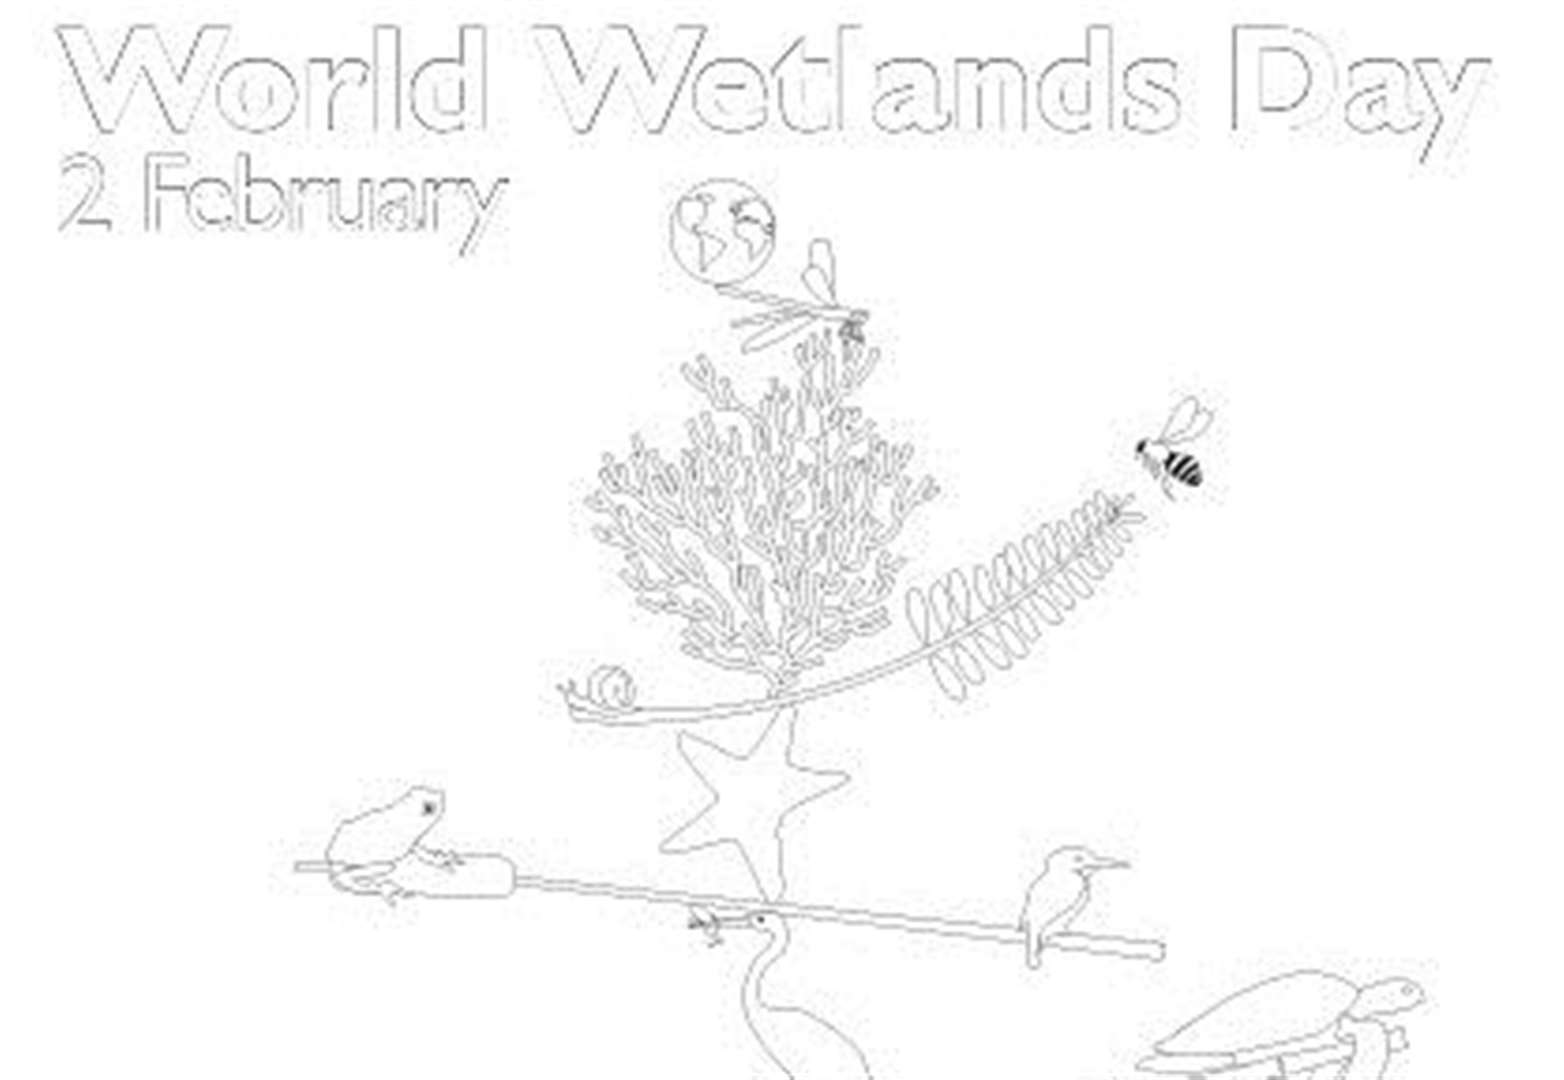 RSPB World Wetlands Day competition organised by Titchwell Marsh nature reserve